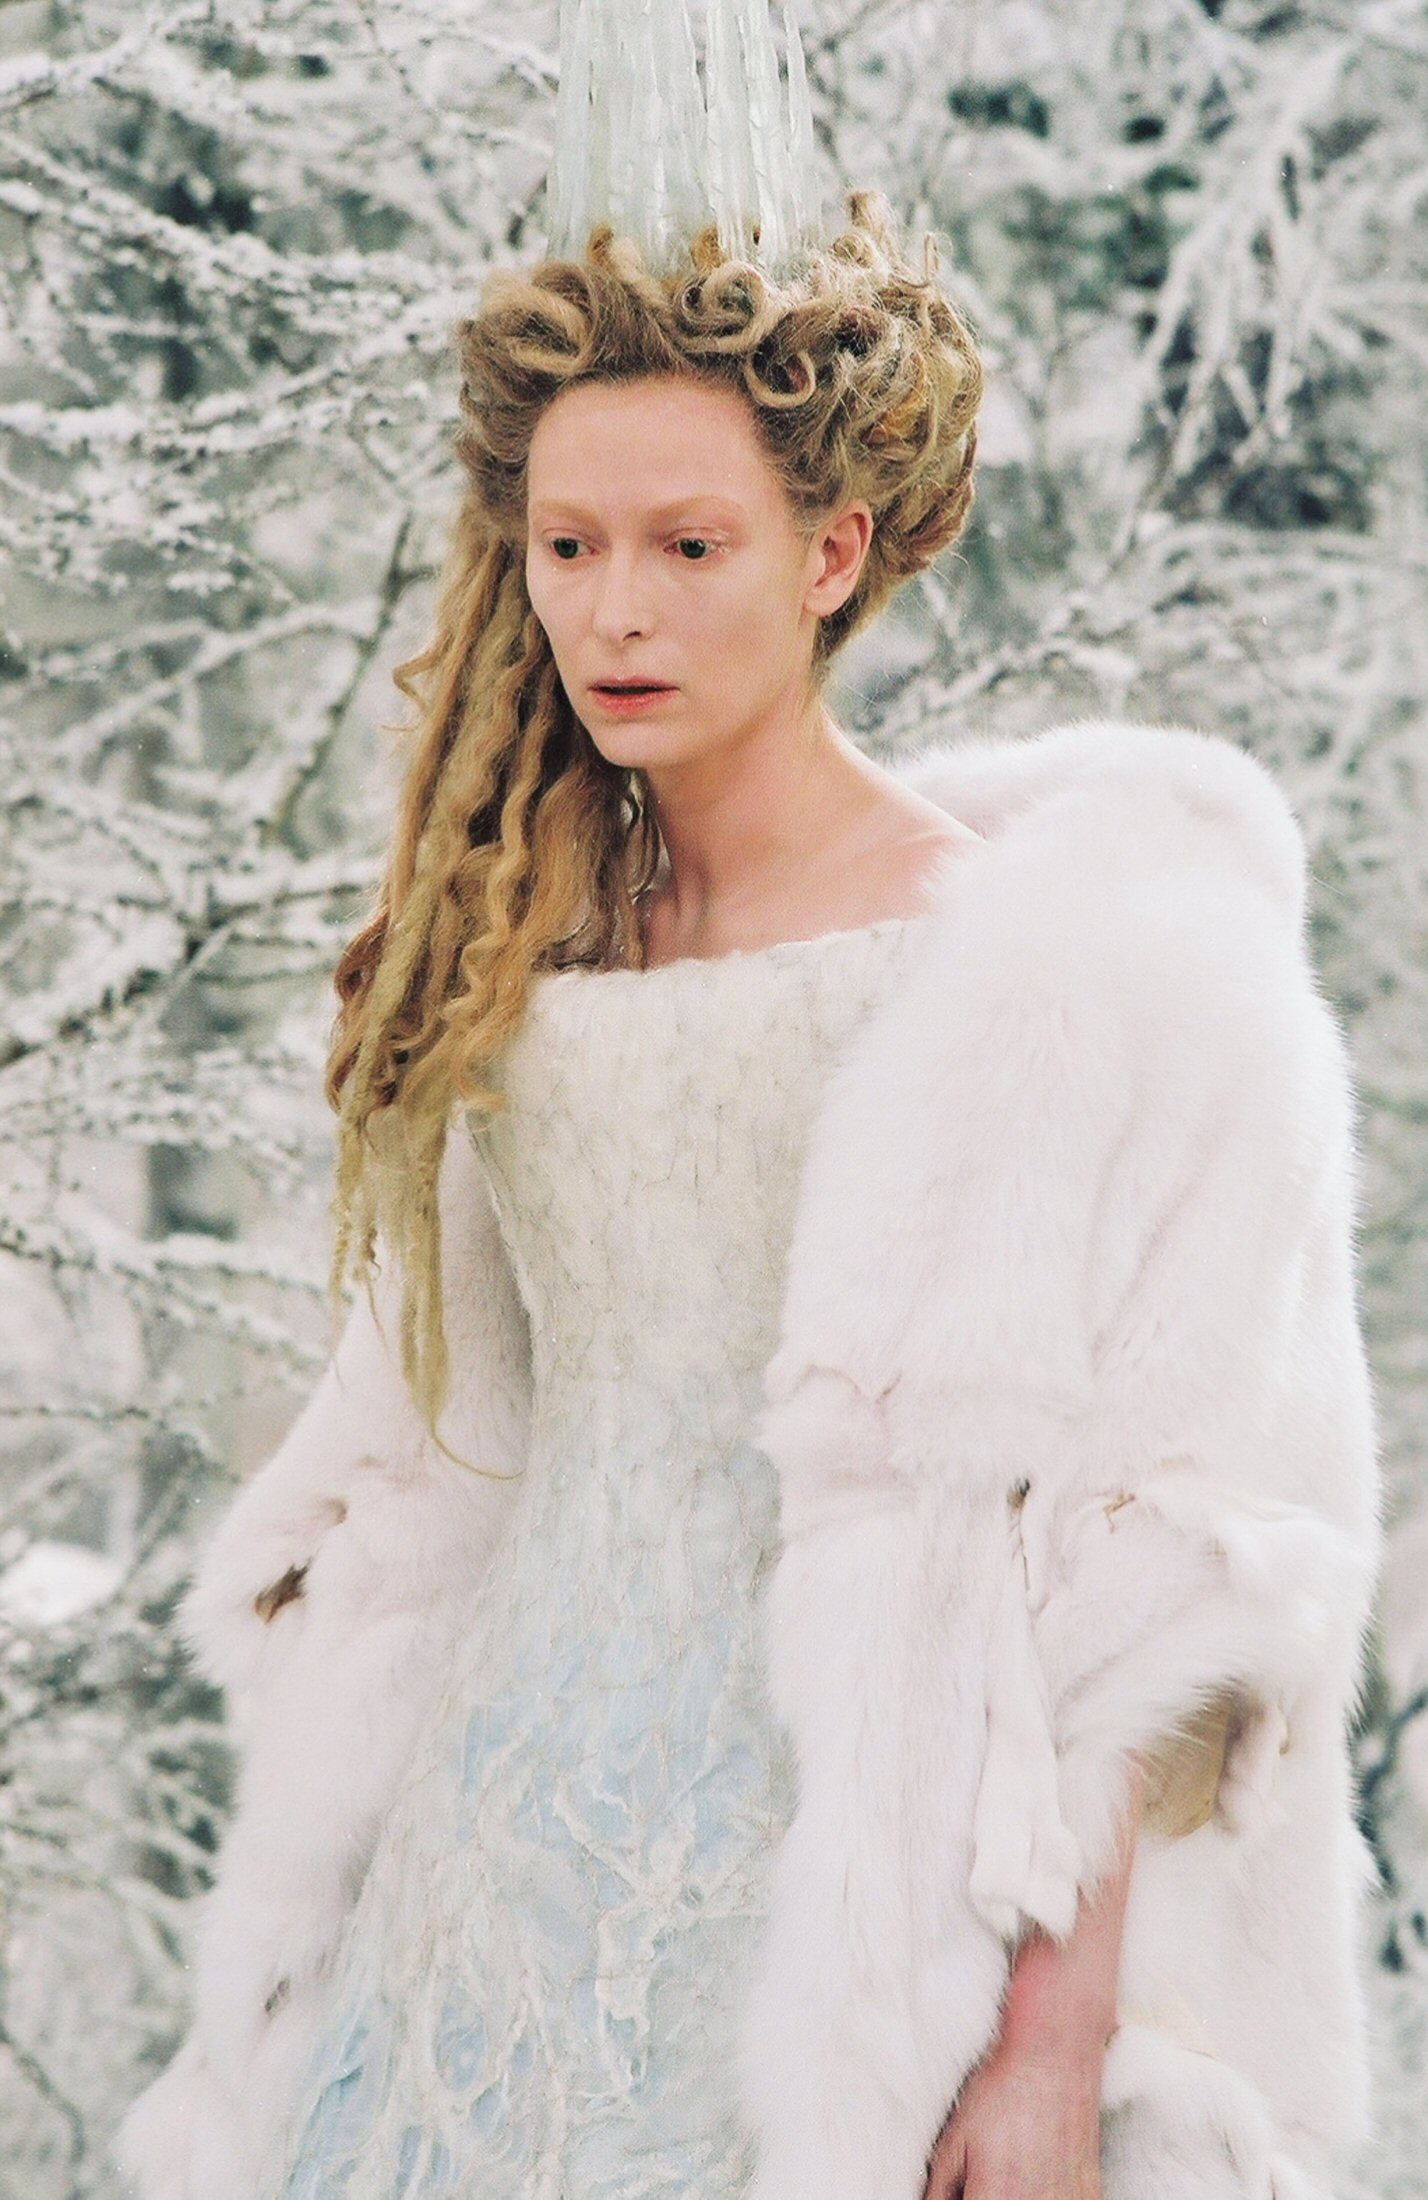 the villain from Narnia, Jadis the White Witch